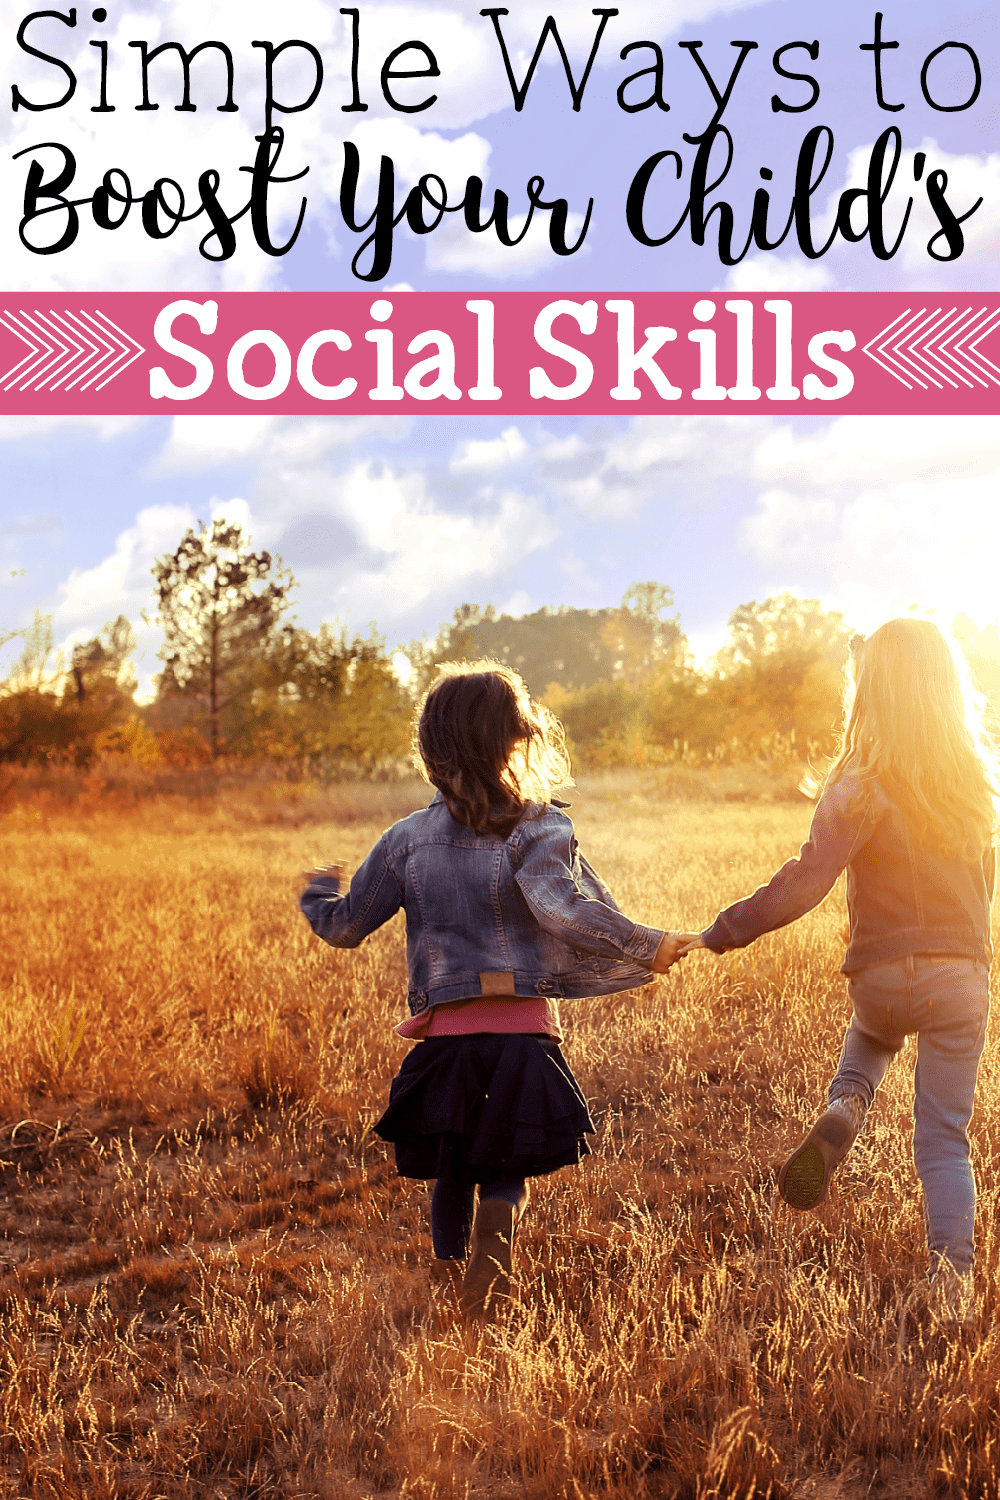 Simple Ways to Boost Your Child's Social Skills